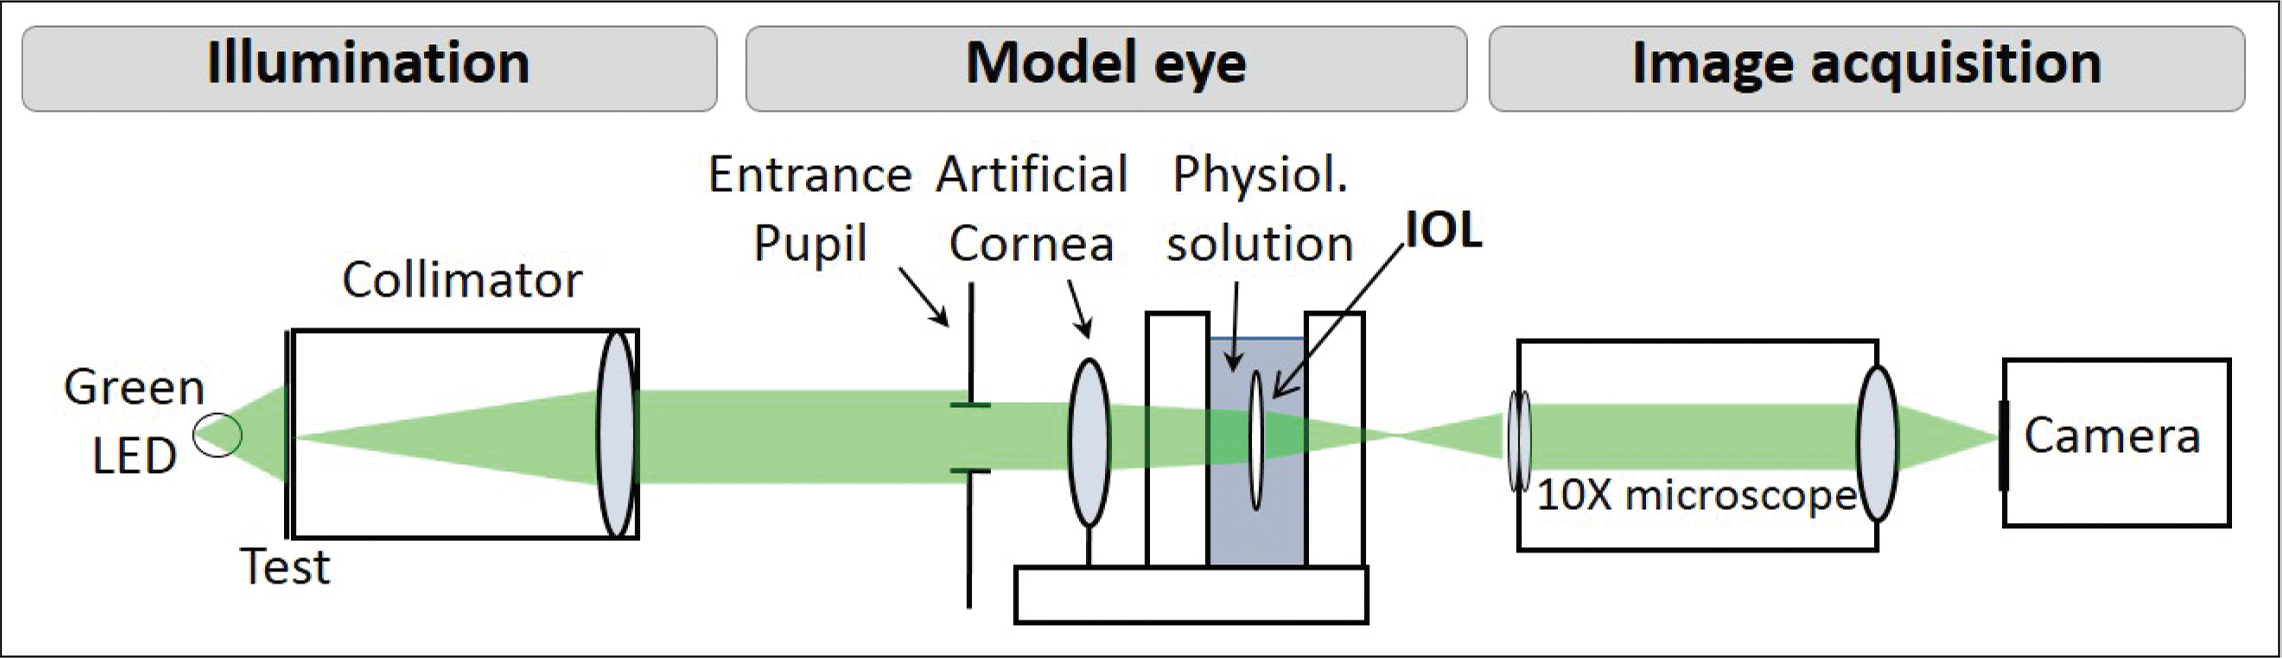 Optical set-up used for in vitro assessment of the intraocular lenses (IOLs).